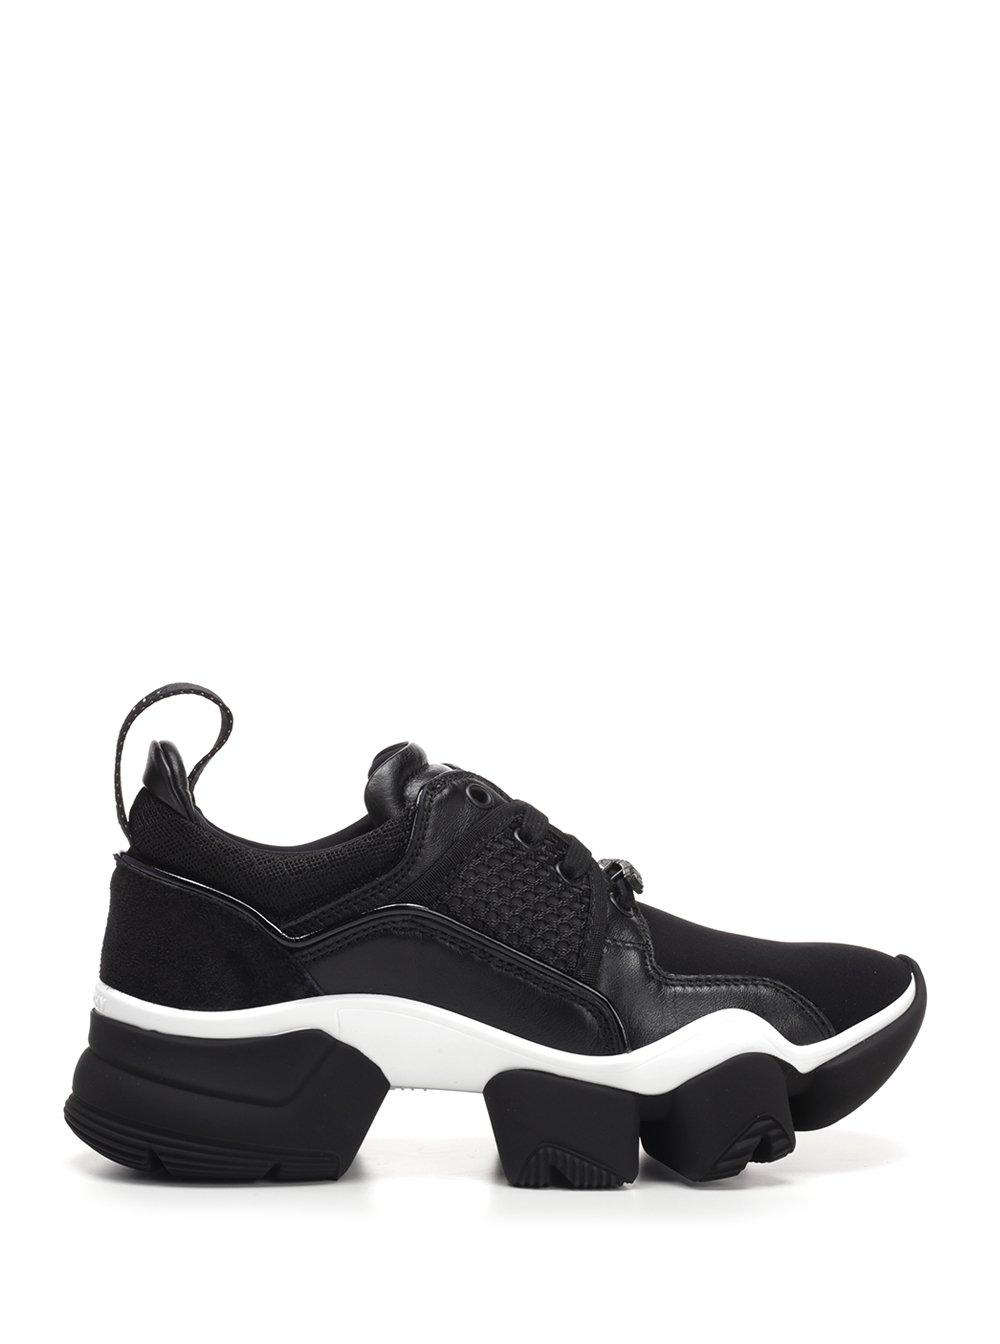 32f946734b2 Lyst - Givenchy Mixed-material Sneakers in Black - Save 40%